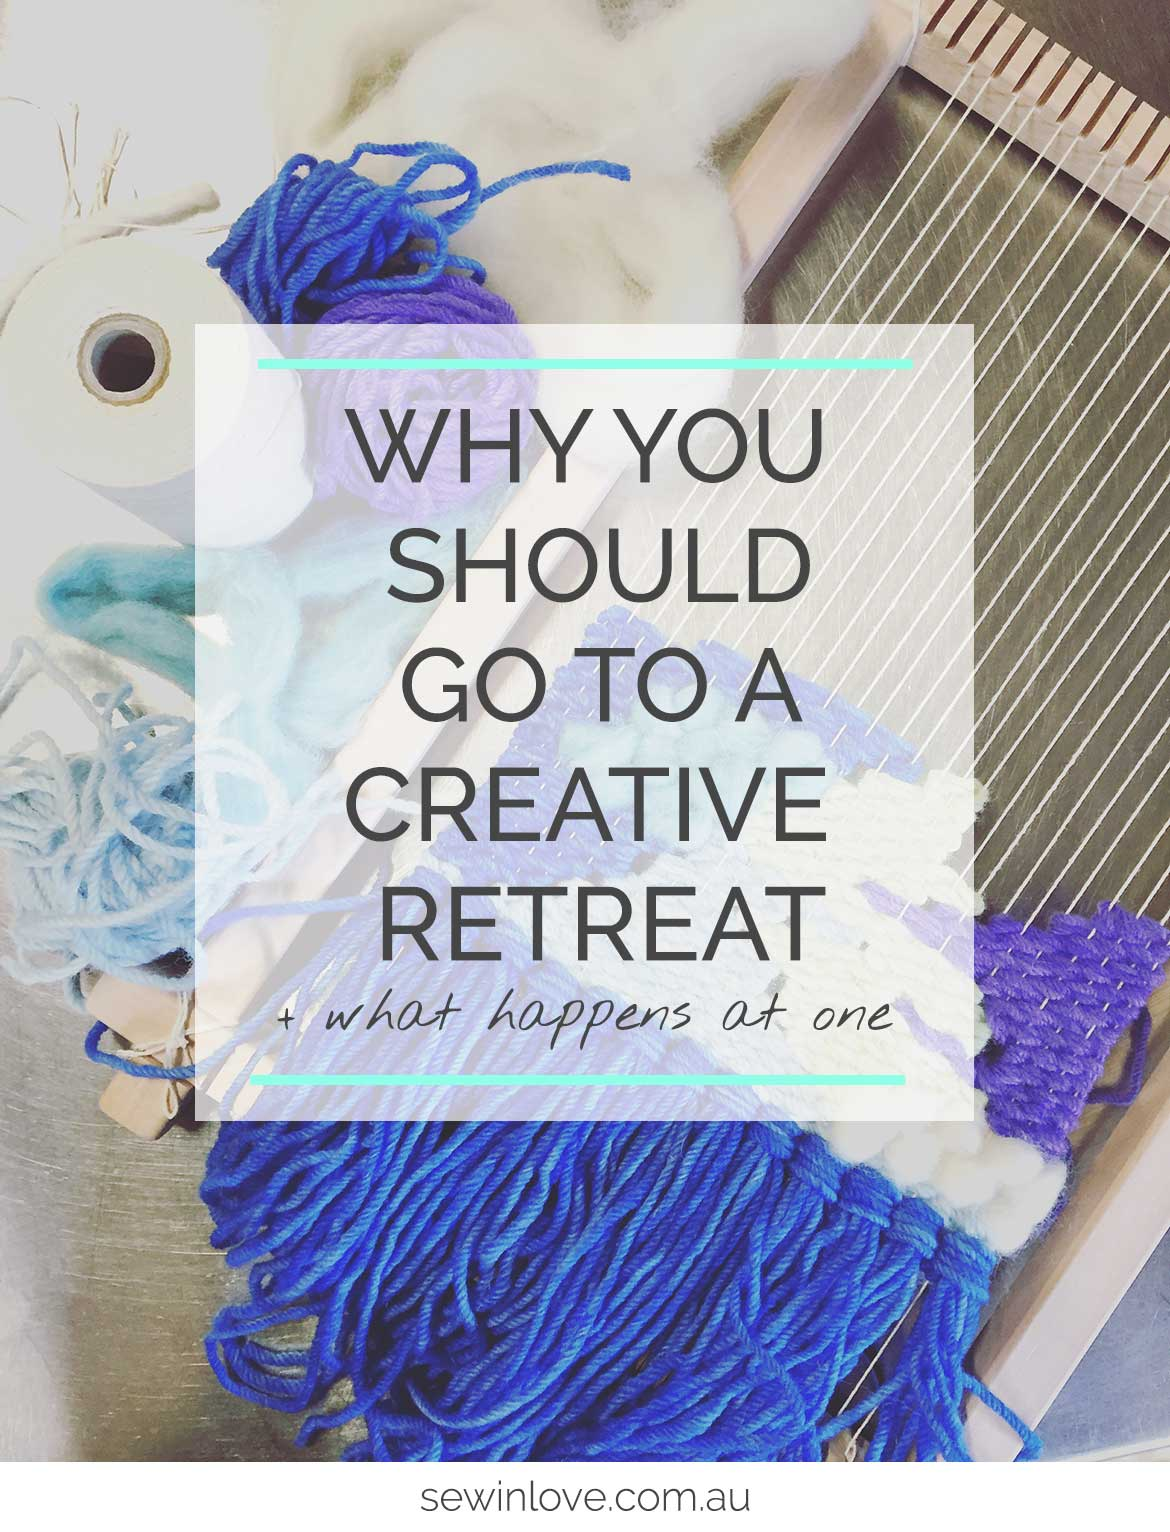 Creative Retreat Ideas - I went to a creative retreat and it completely energised me. Read on to find out all the activities and why you should go to a creative retreat too!